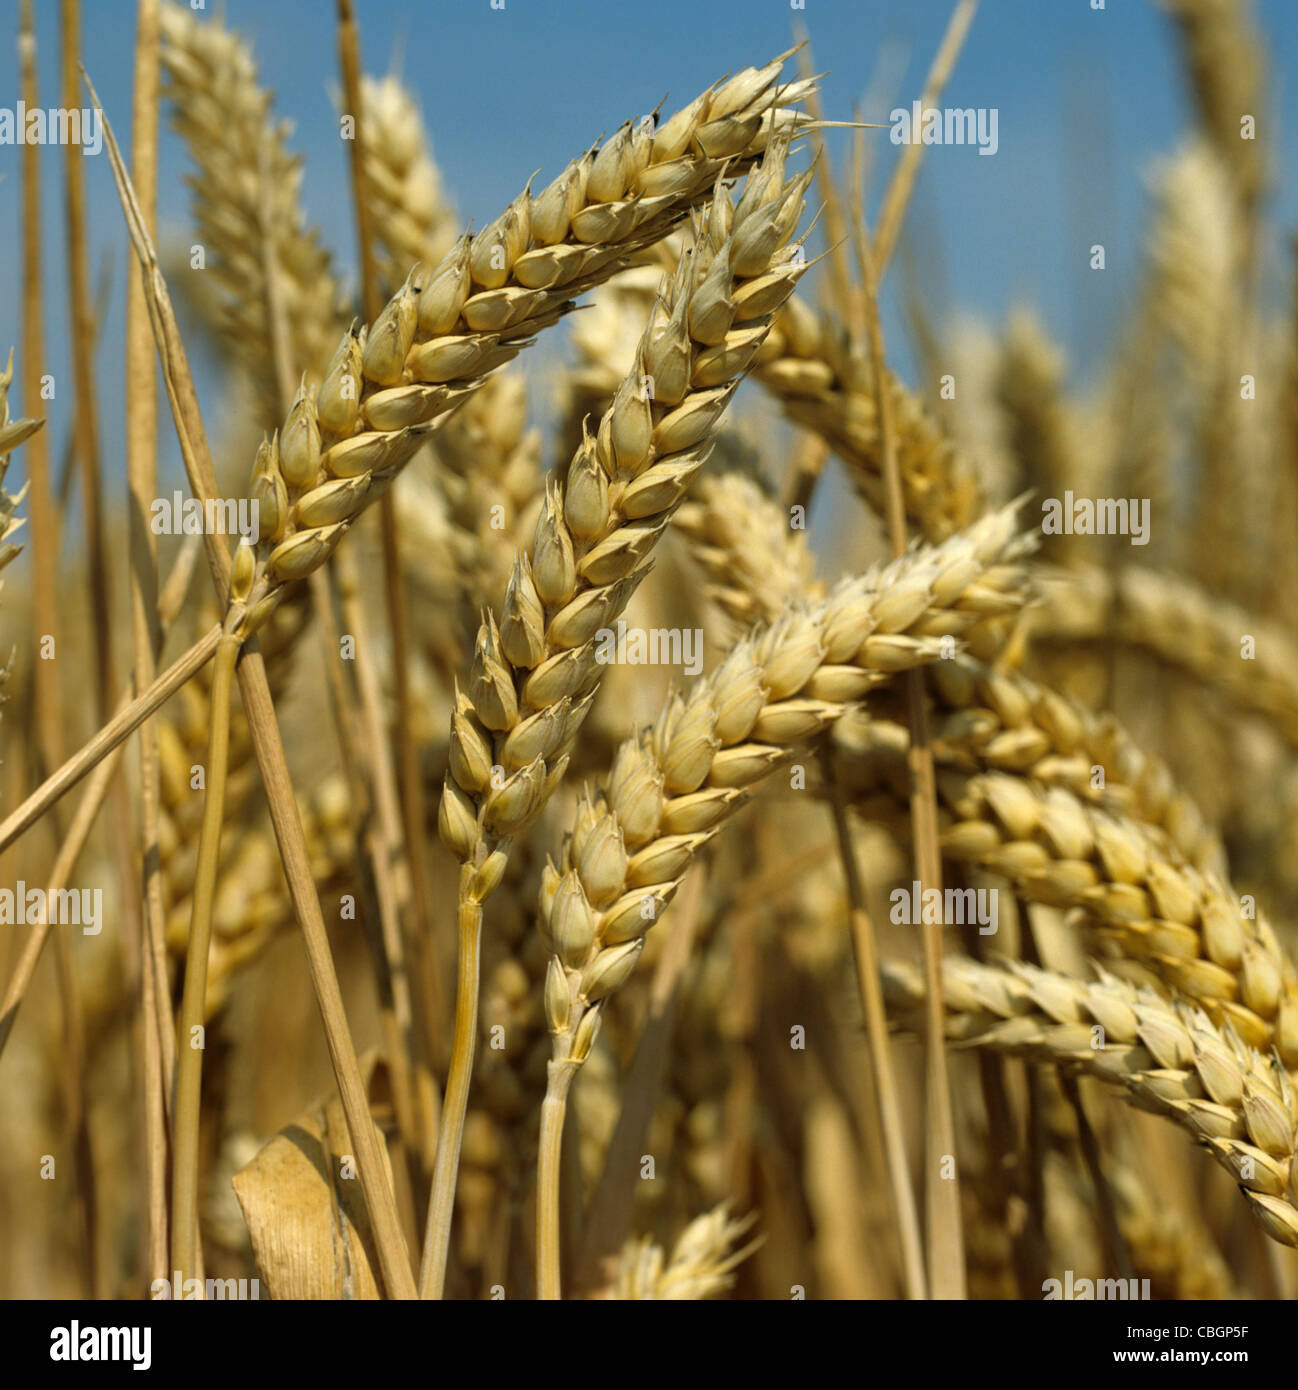 Ears of ripe wheat against a blue summer sky - Stock Image